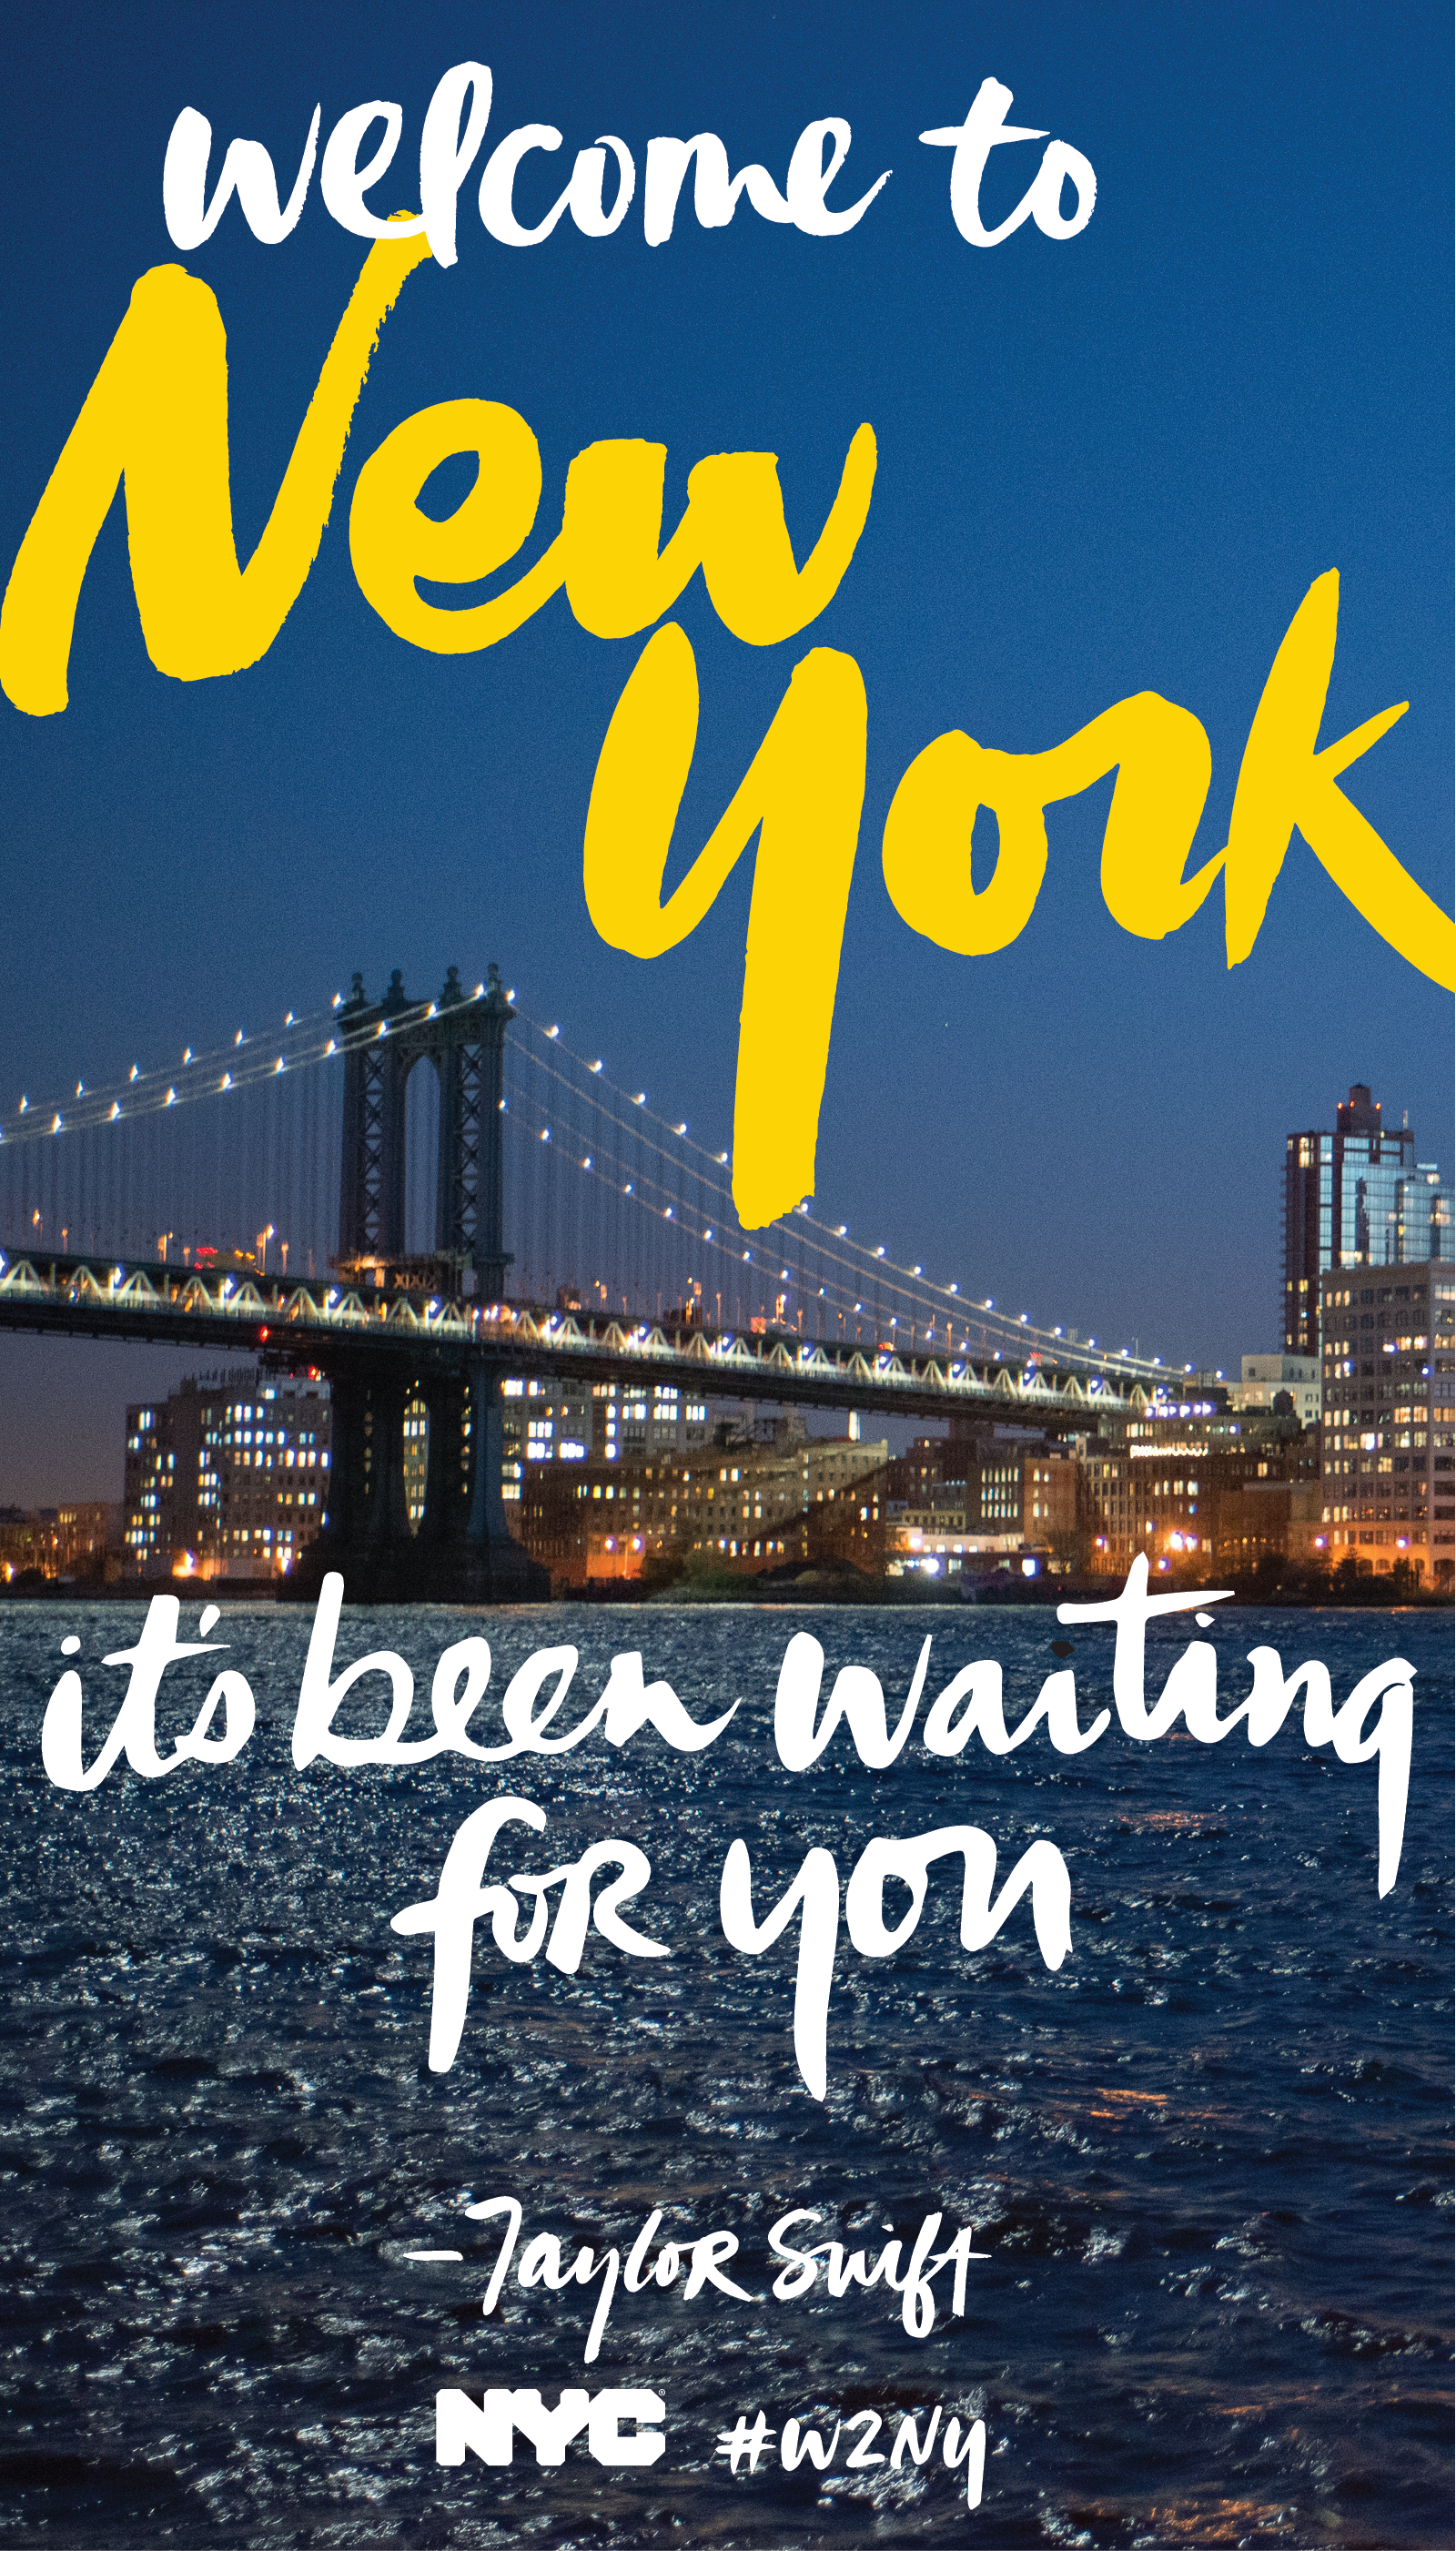 Welcome To New York Its Been Waiting For You Taylor Swift The